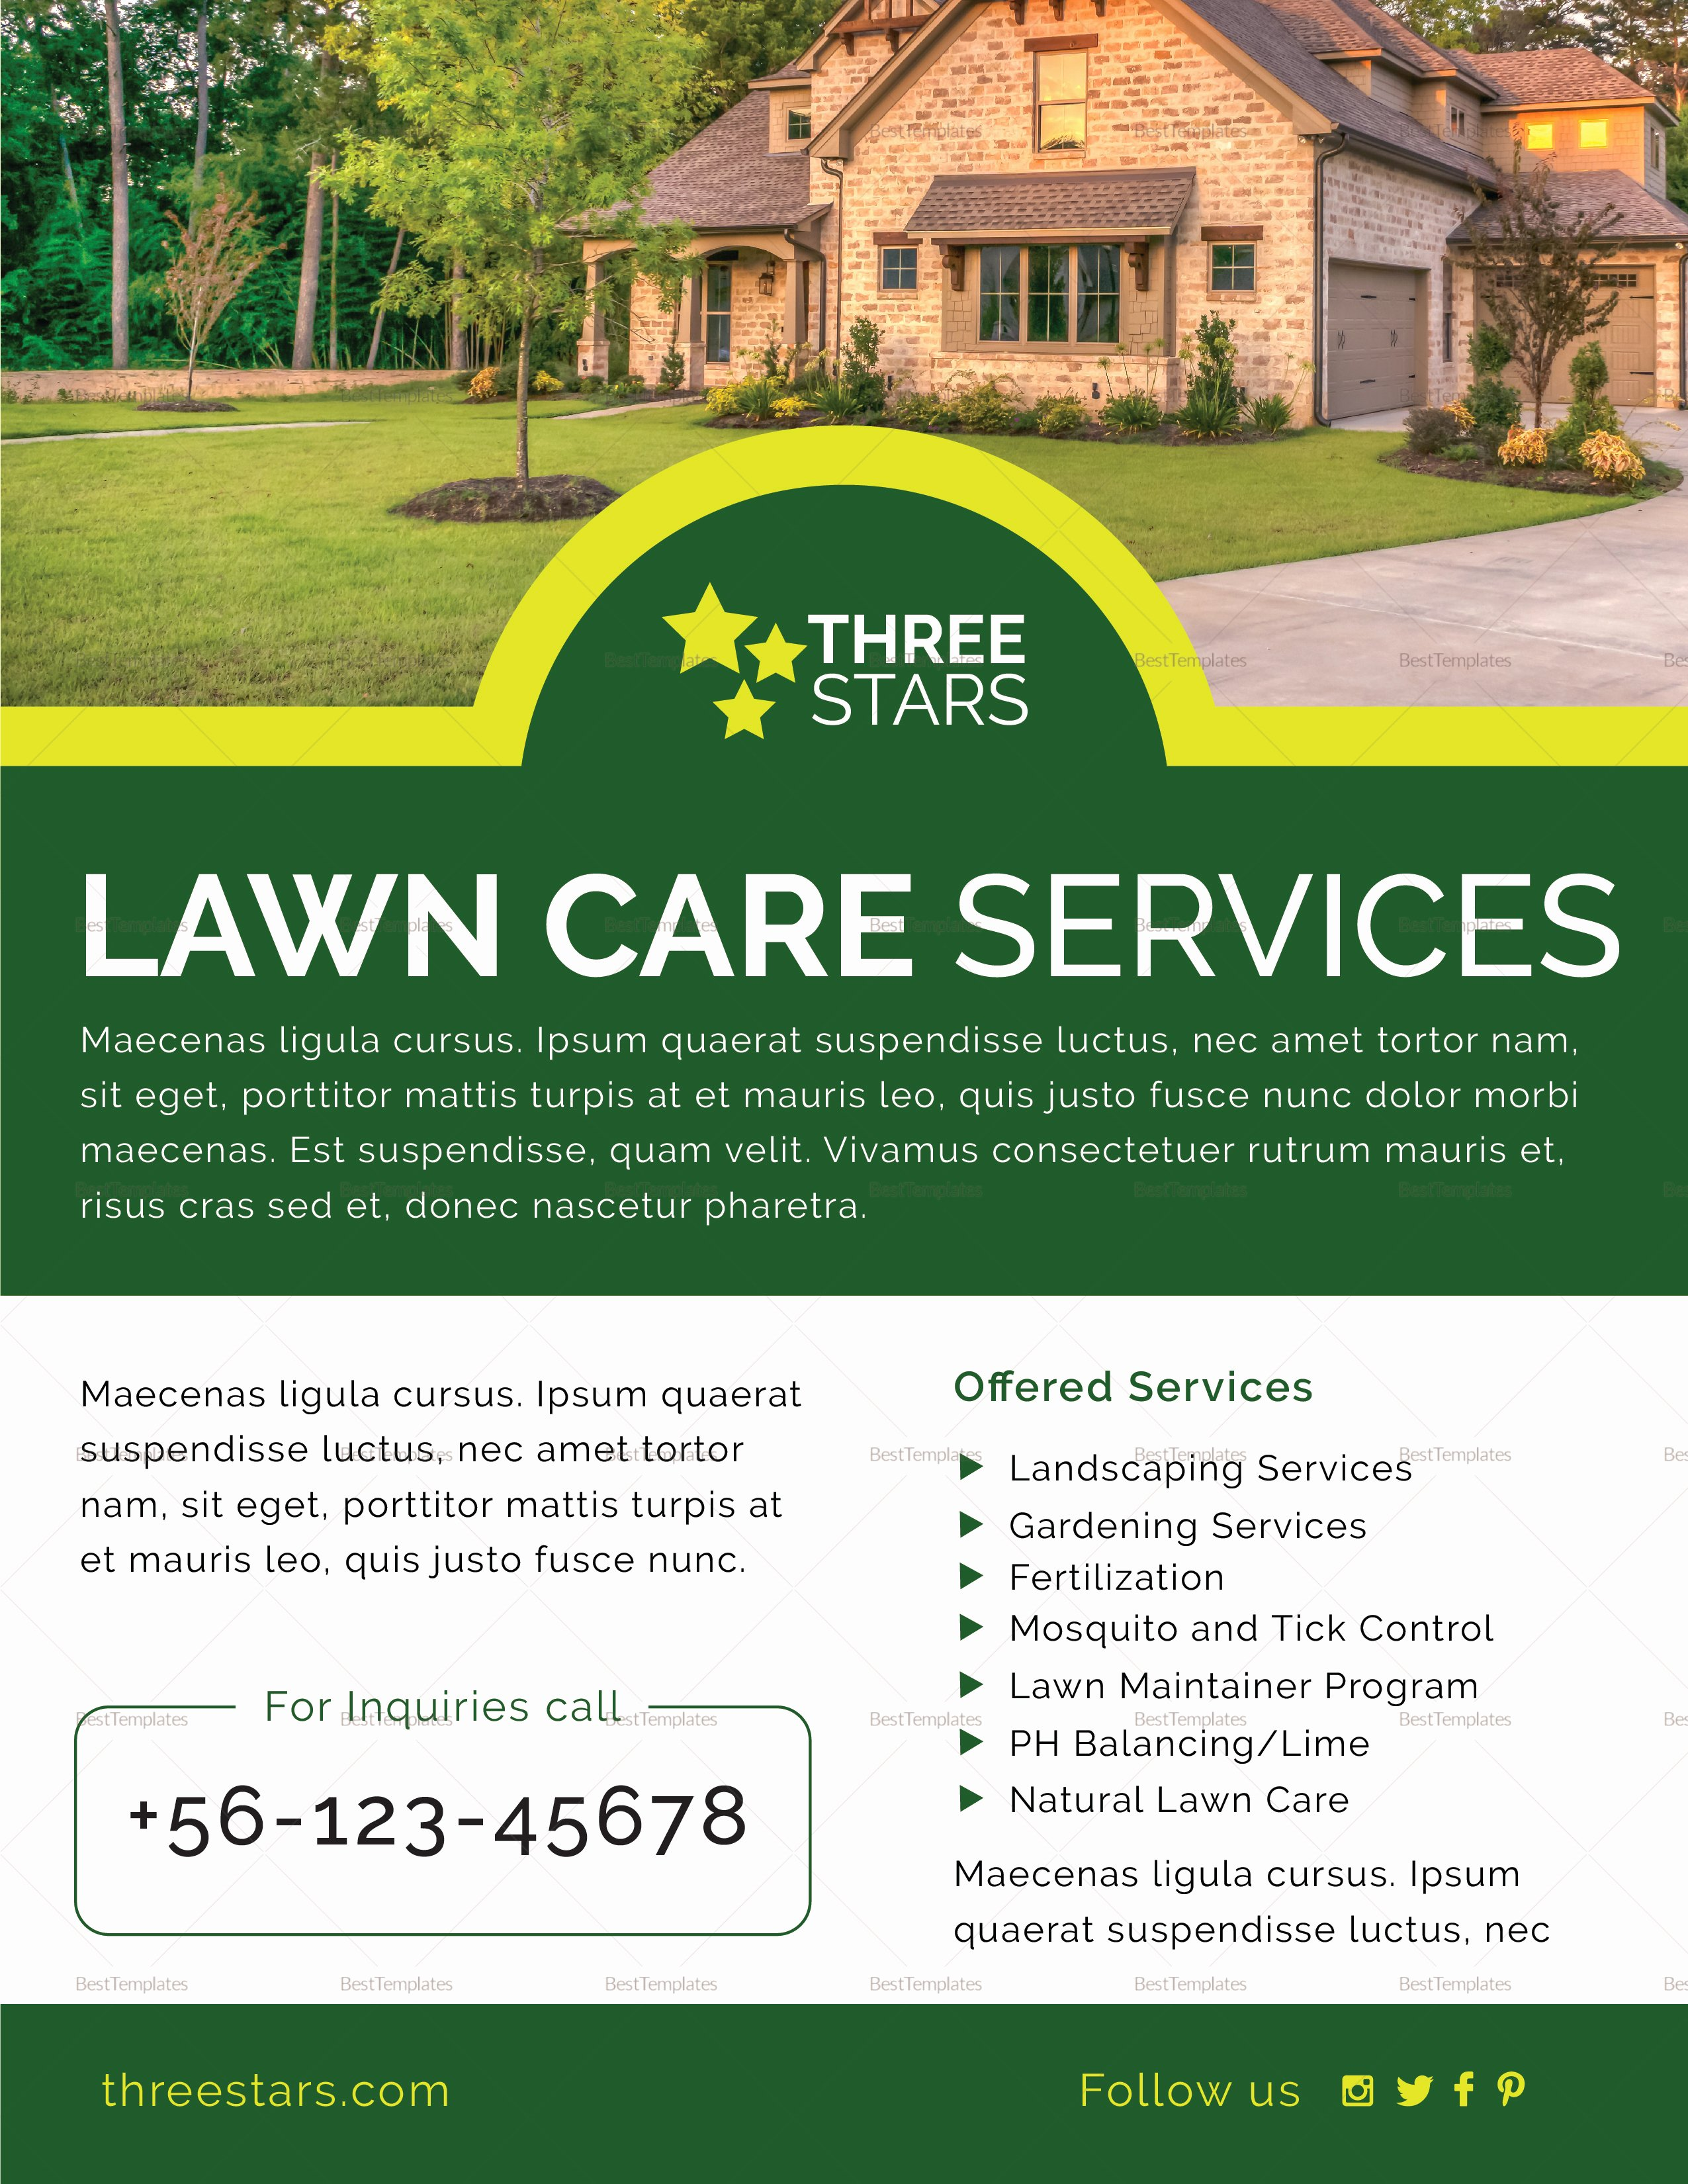 Lawn Mowing Flyer Templates Fresh Lawn Care Flyer Design Template In Psd Word Publisher Illustrator Indesign